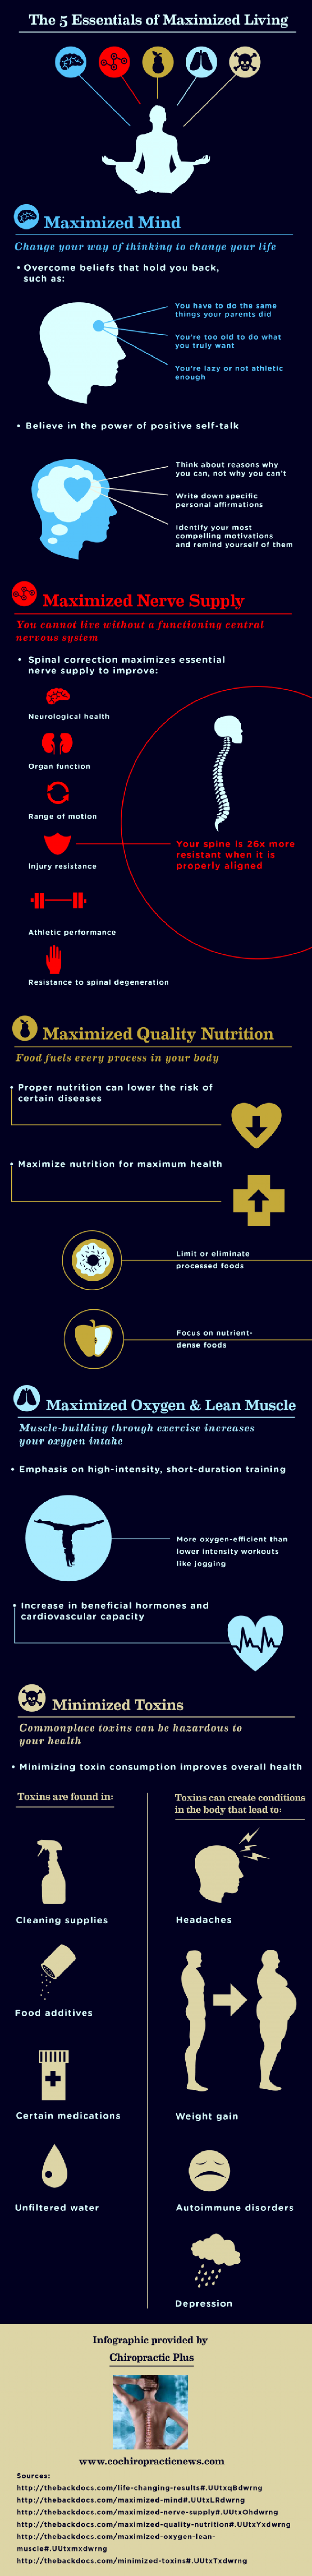 The 5 Essentials of Maximized Living Infographic